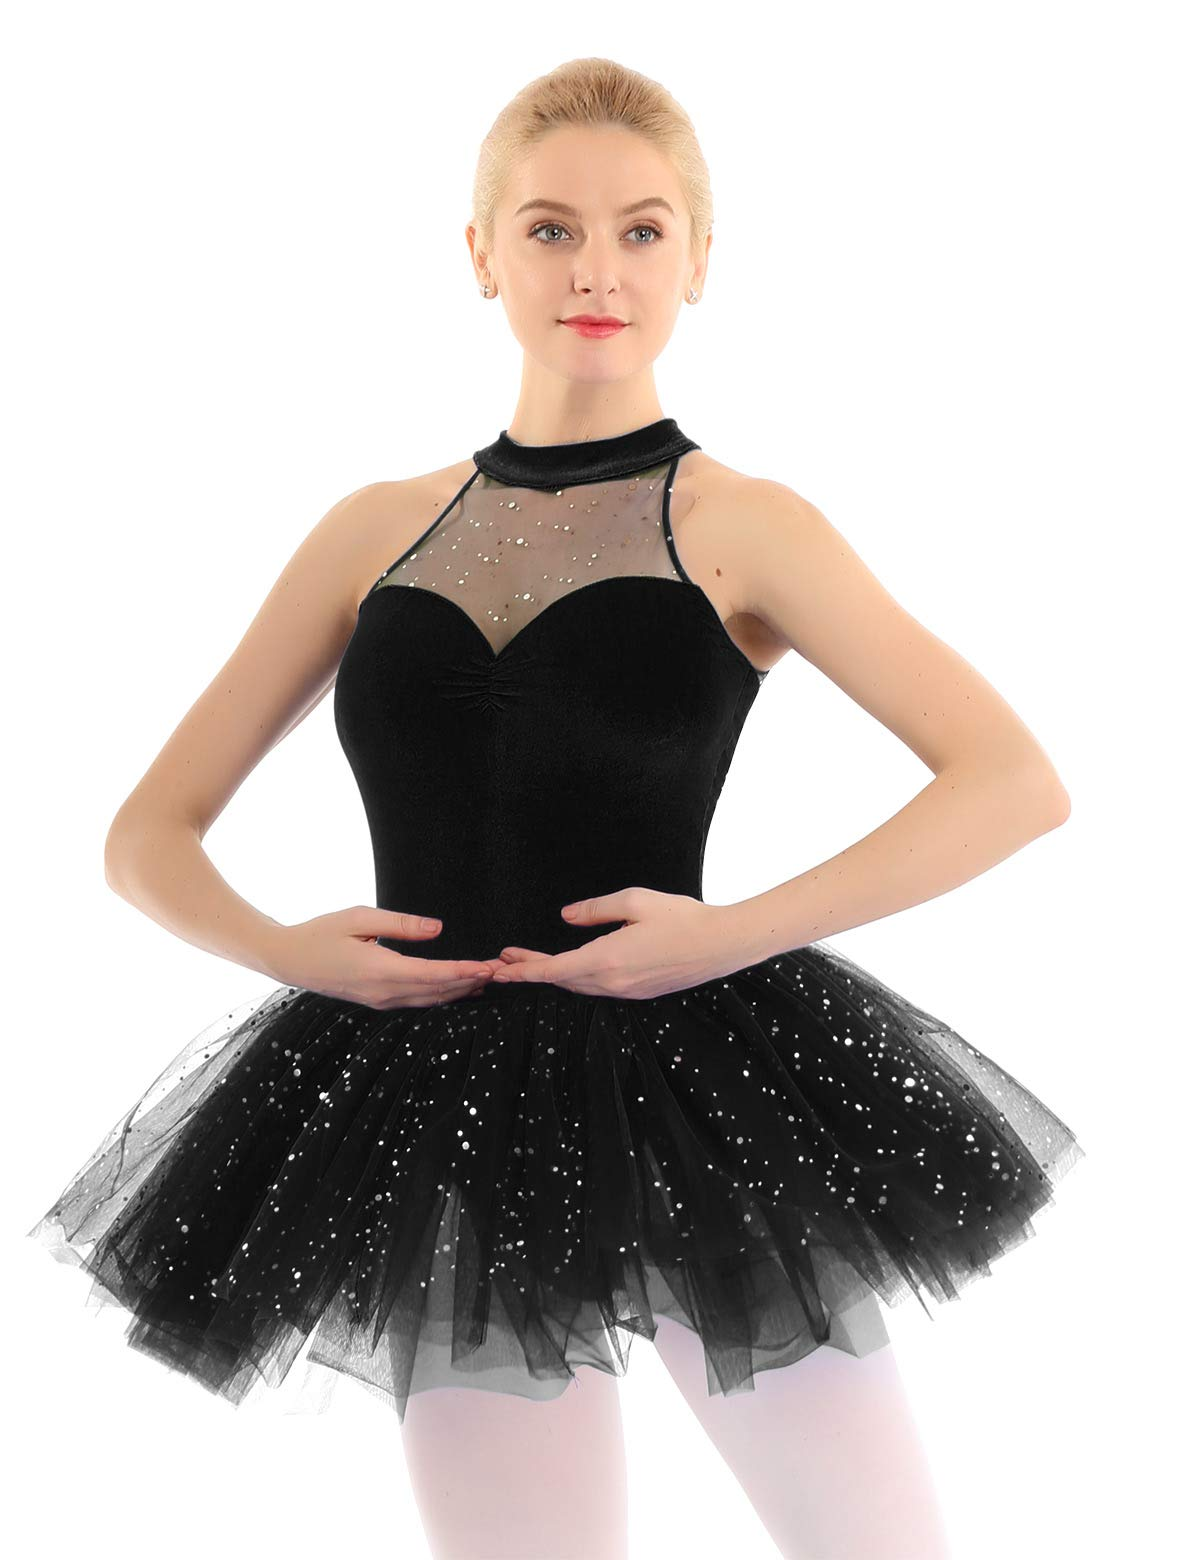 iiniim Women's Ballet Tutu Costume Black Swan Lake Dance Leotard Dress Black Sequins L by iiniim